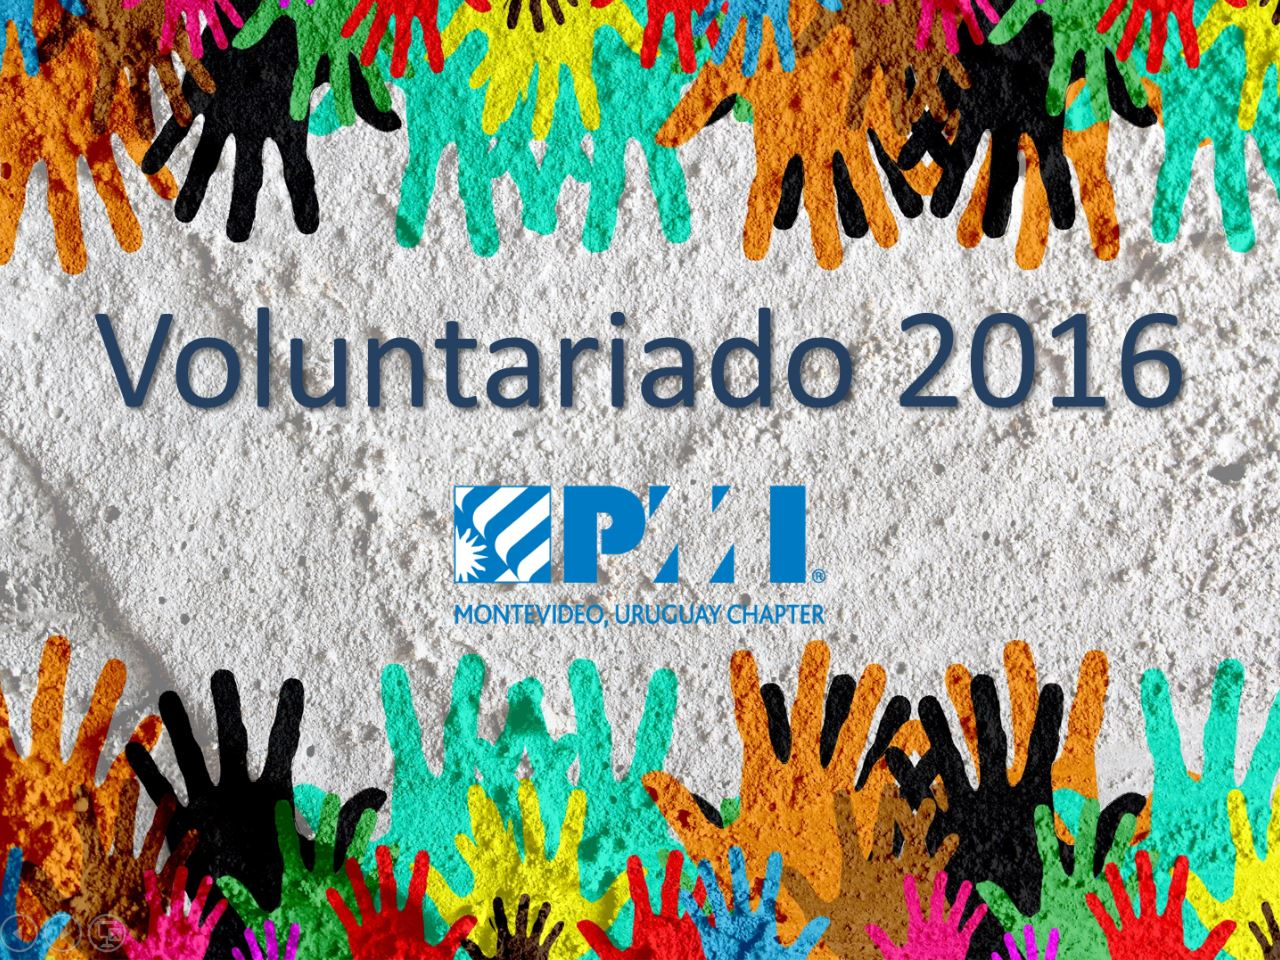 2voluntarios tapa 2016